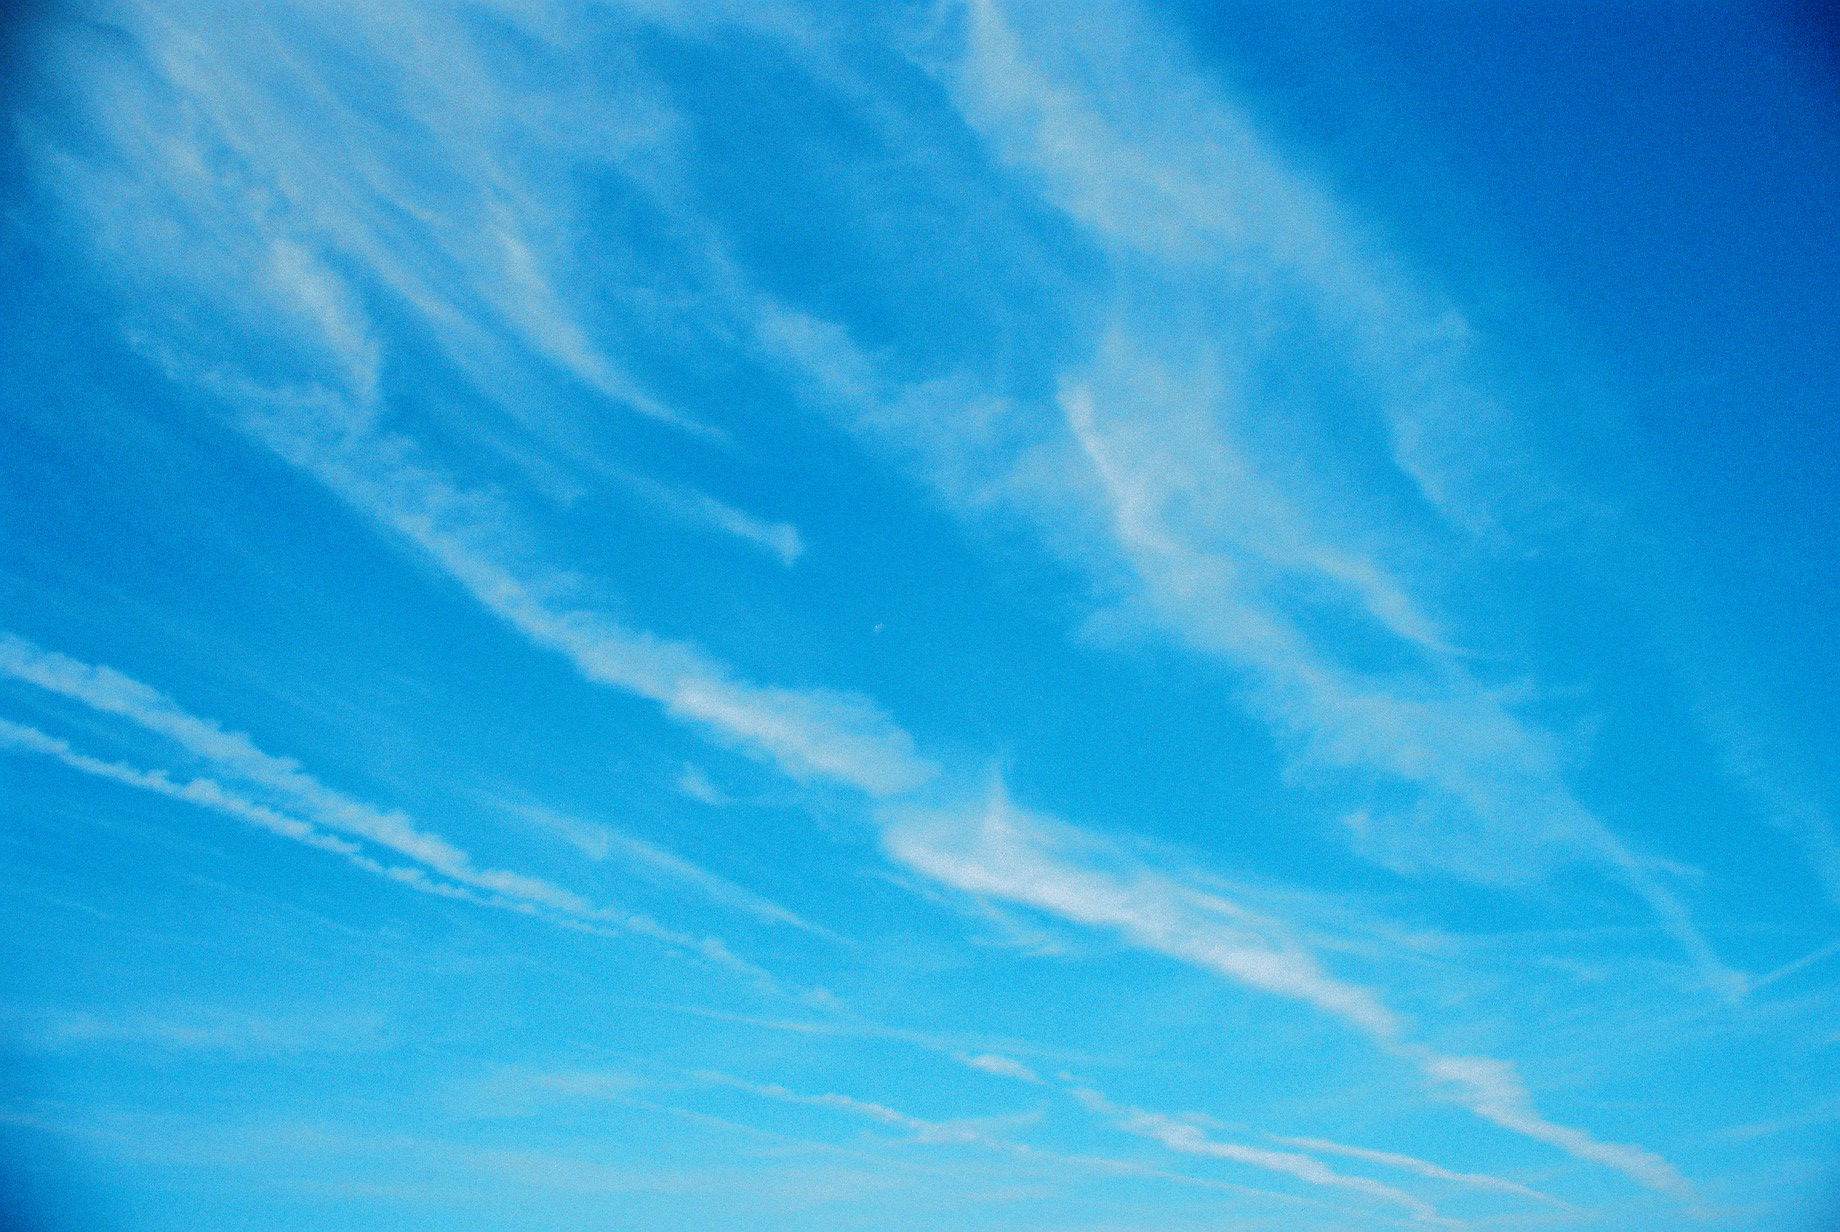 Stunningly blue, cloud-streaked sky